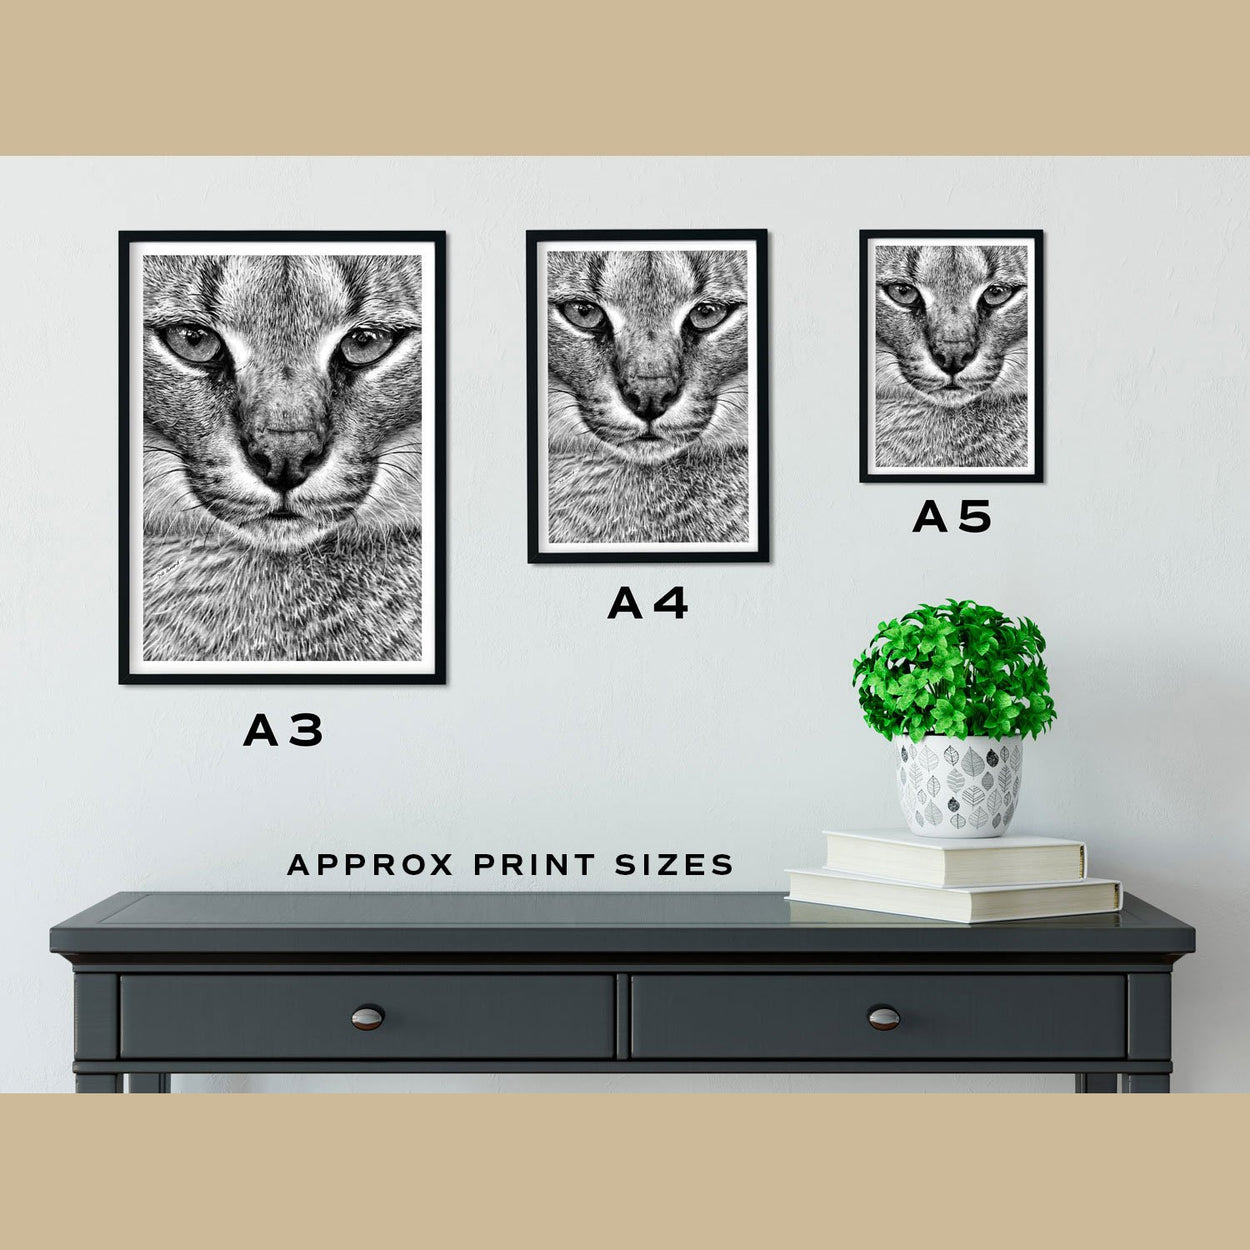 Caracal Prints Size Comparison - The Thriving Wild.jpg